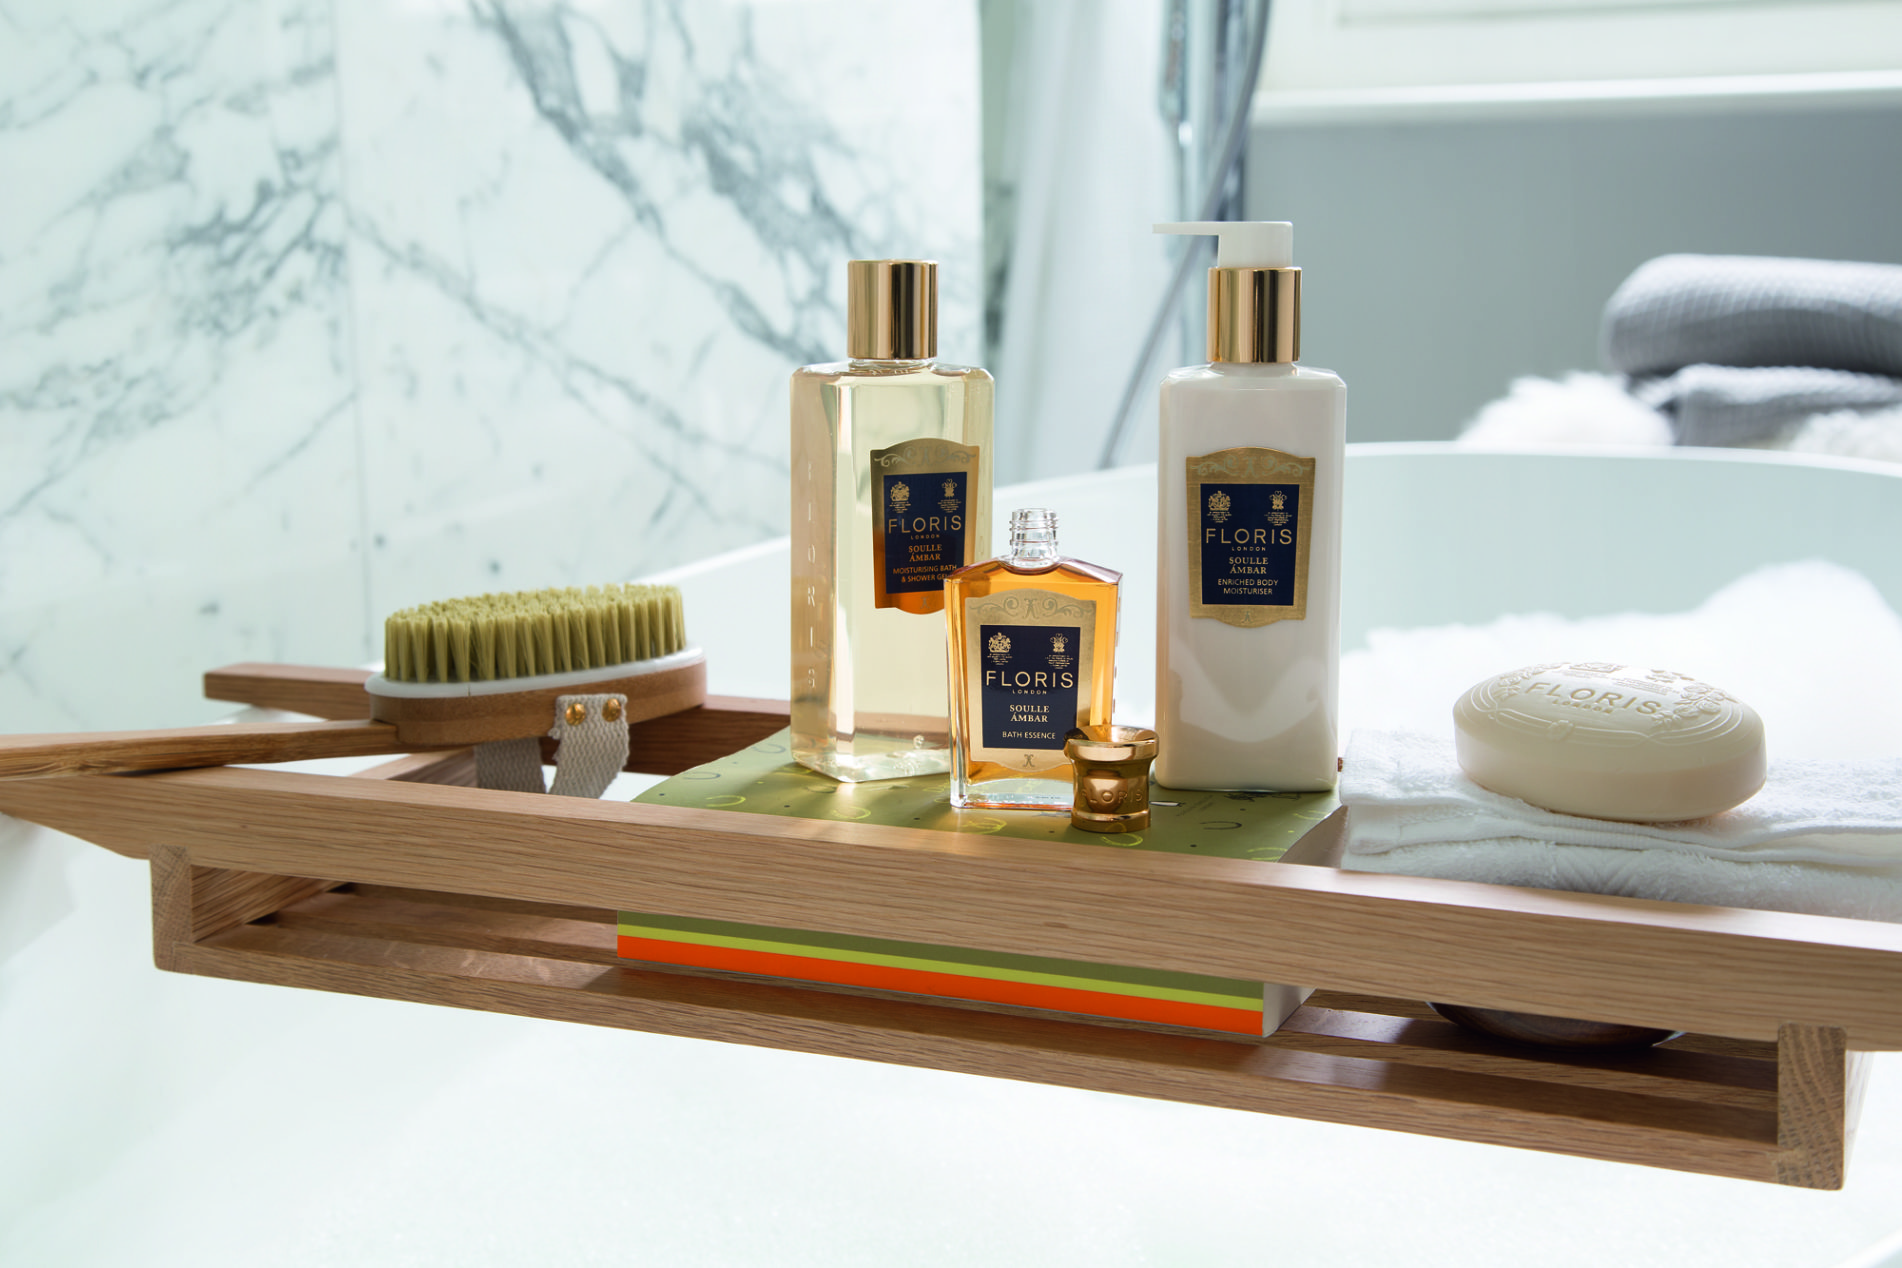 Floris London Womens's Soaps, Bath Essences, Moisturiser at Frontlinestyle